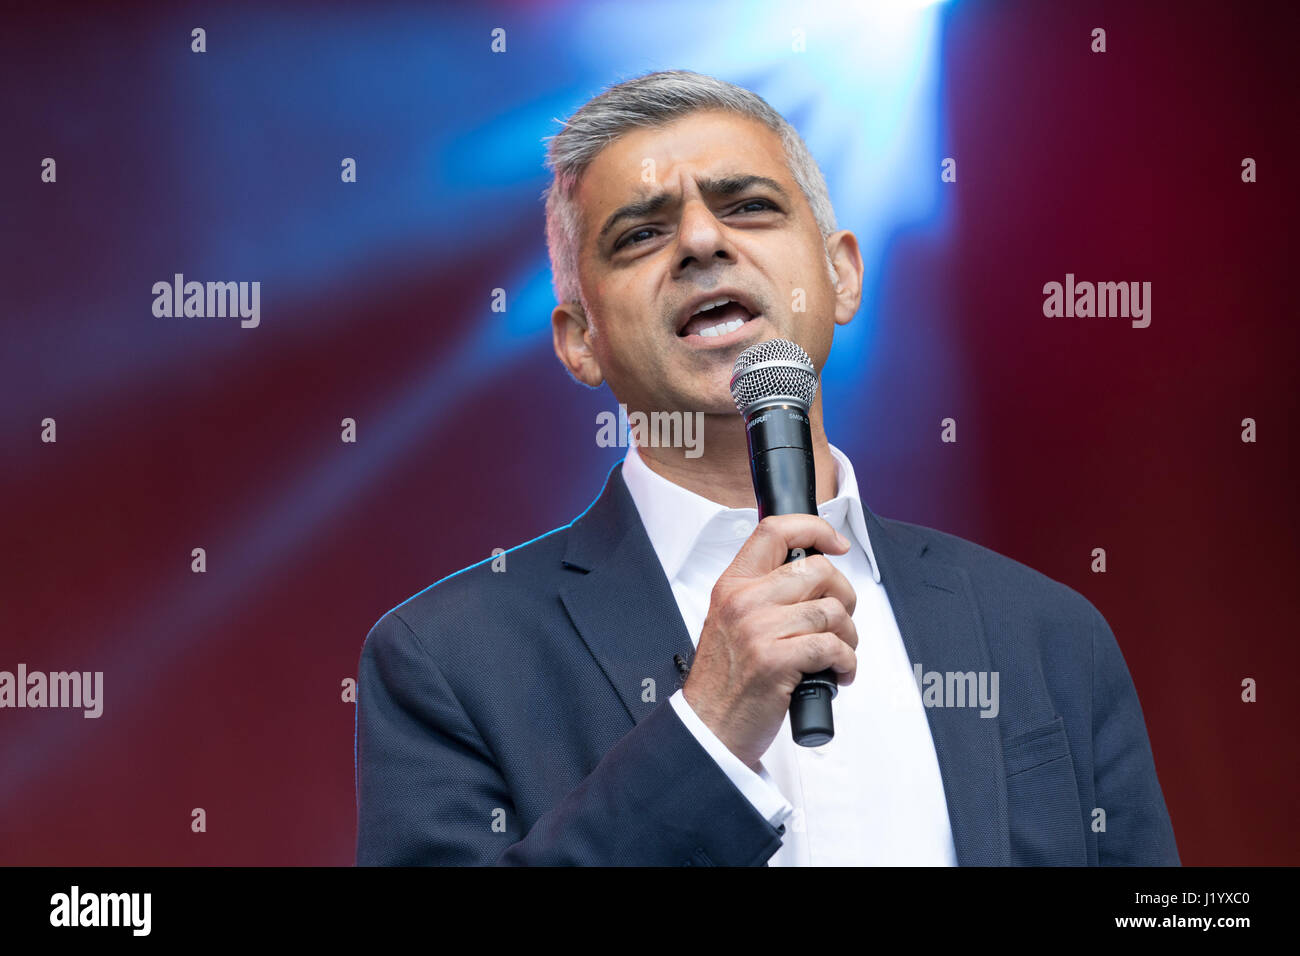 London, UK. 22nd April 2017. Sadiq Khan, Mayor of London speaking on the stage at St George's Day celebrations - Stock Image